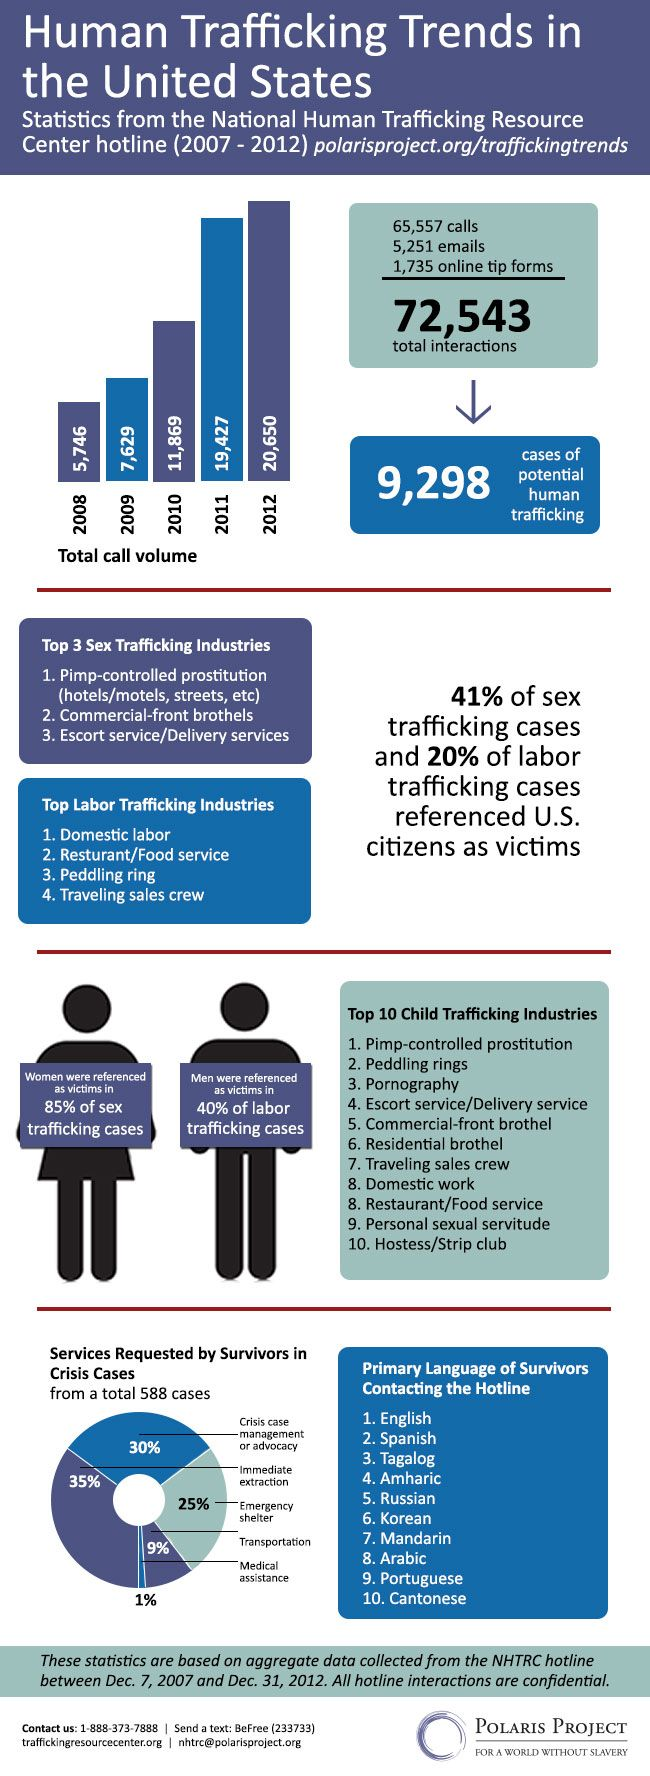 sex trafficking in california essay Essay on human trafficking in the united states 593 words | 3 pages identified when looking at illegal migration: people immigrating because of human trafficking, and people being smuggled unlawfully in order to find a better life labor trafficking is often entangled with illegal immigration and smuggling (barrick.